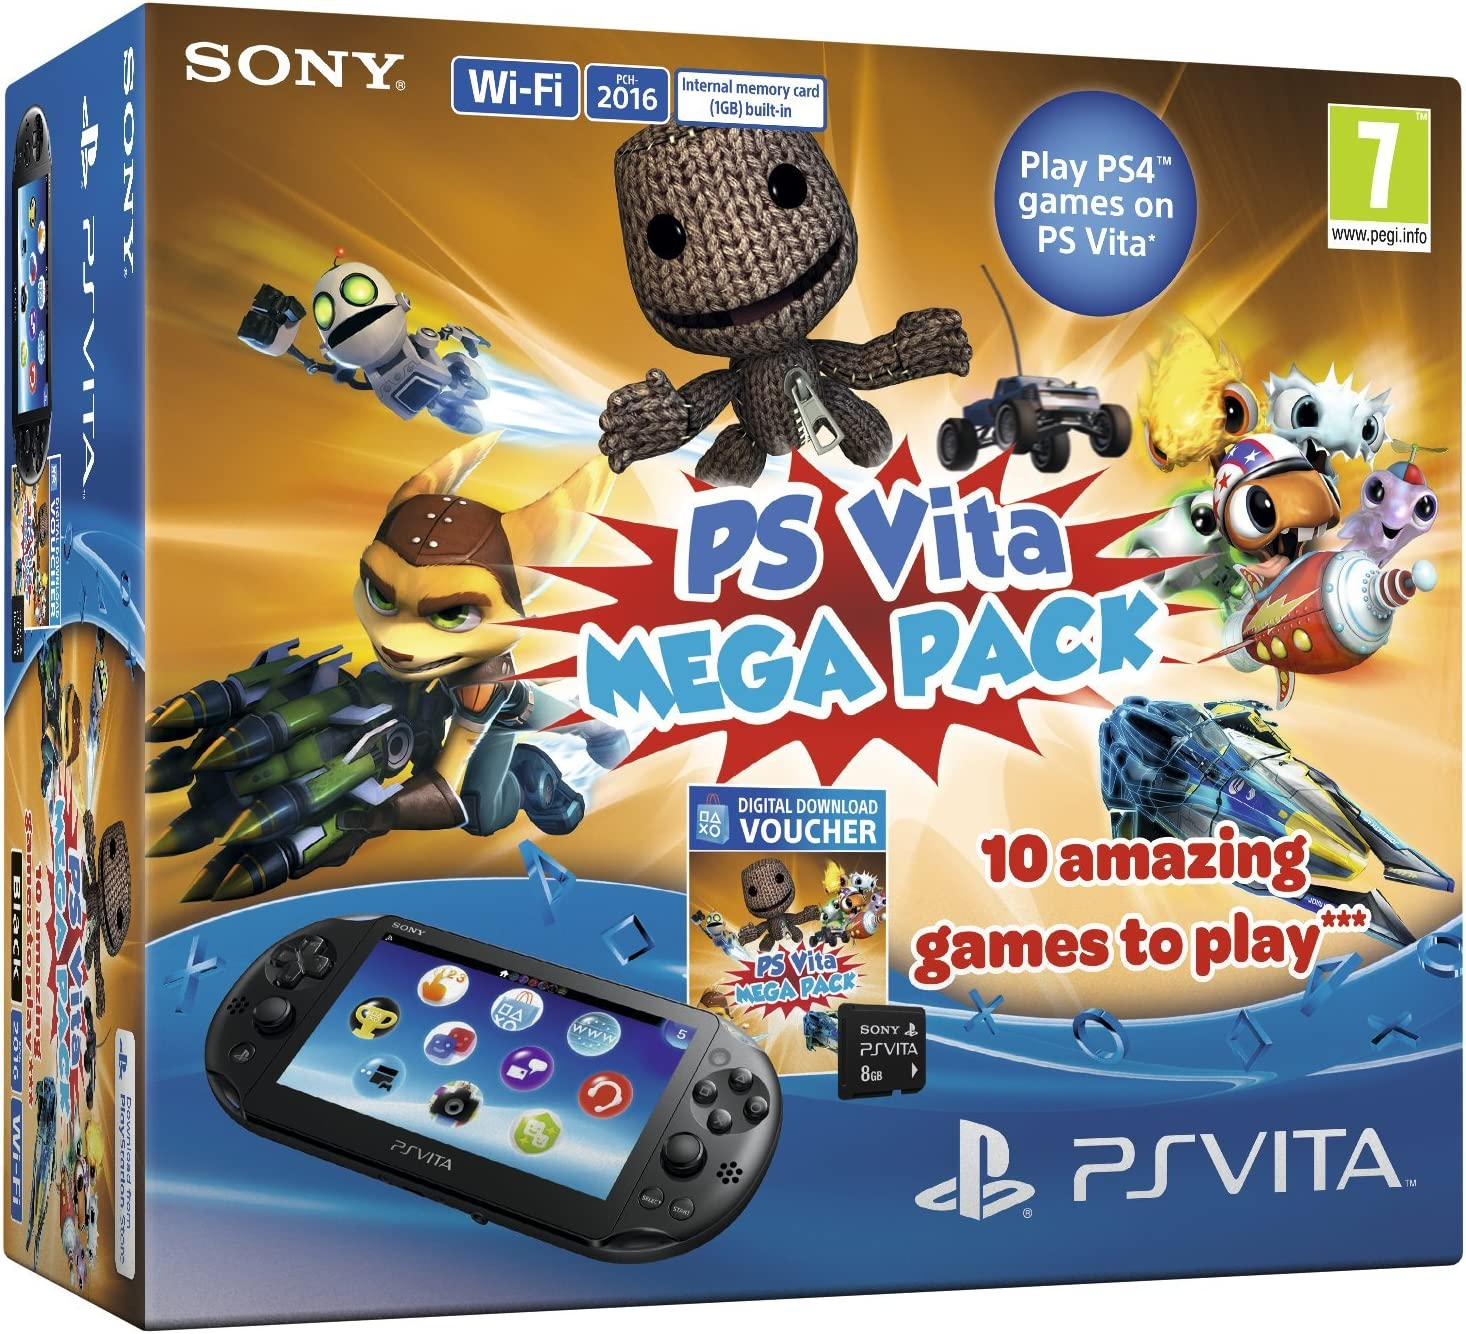 Sony Playstation Vita Console with 10 game Mega Pack on 8 GB ...